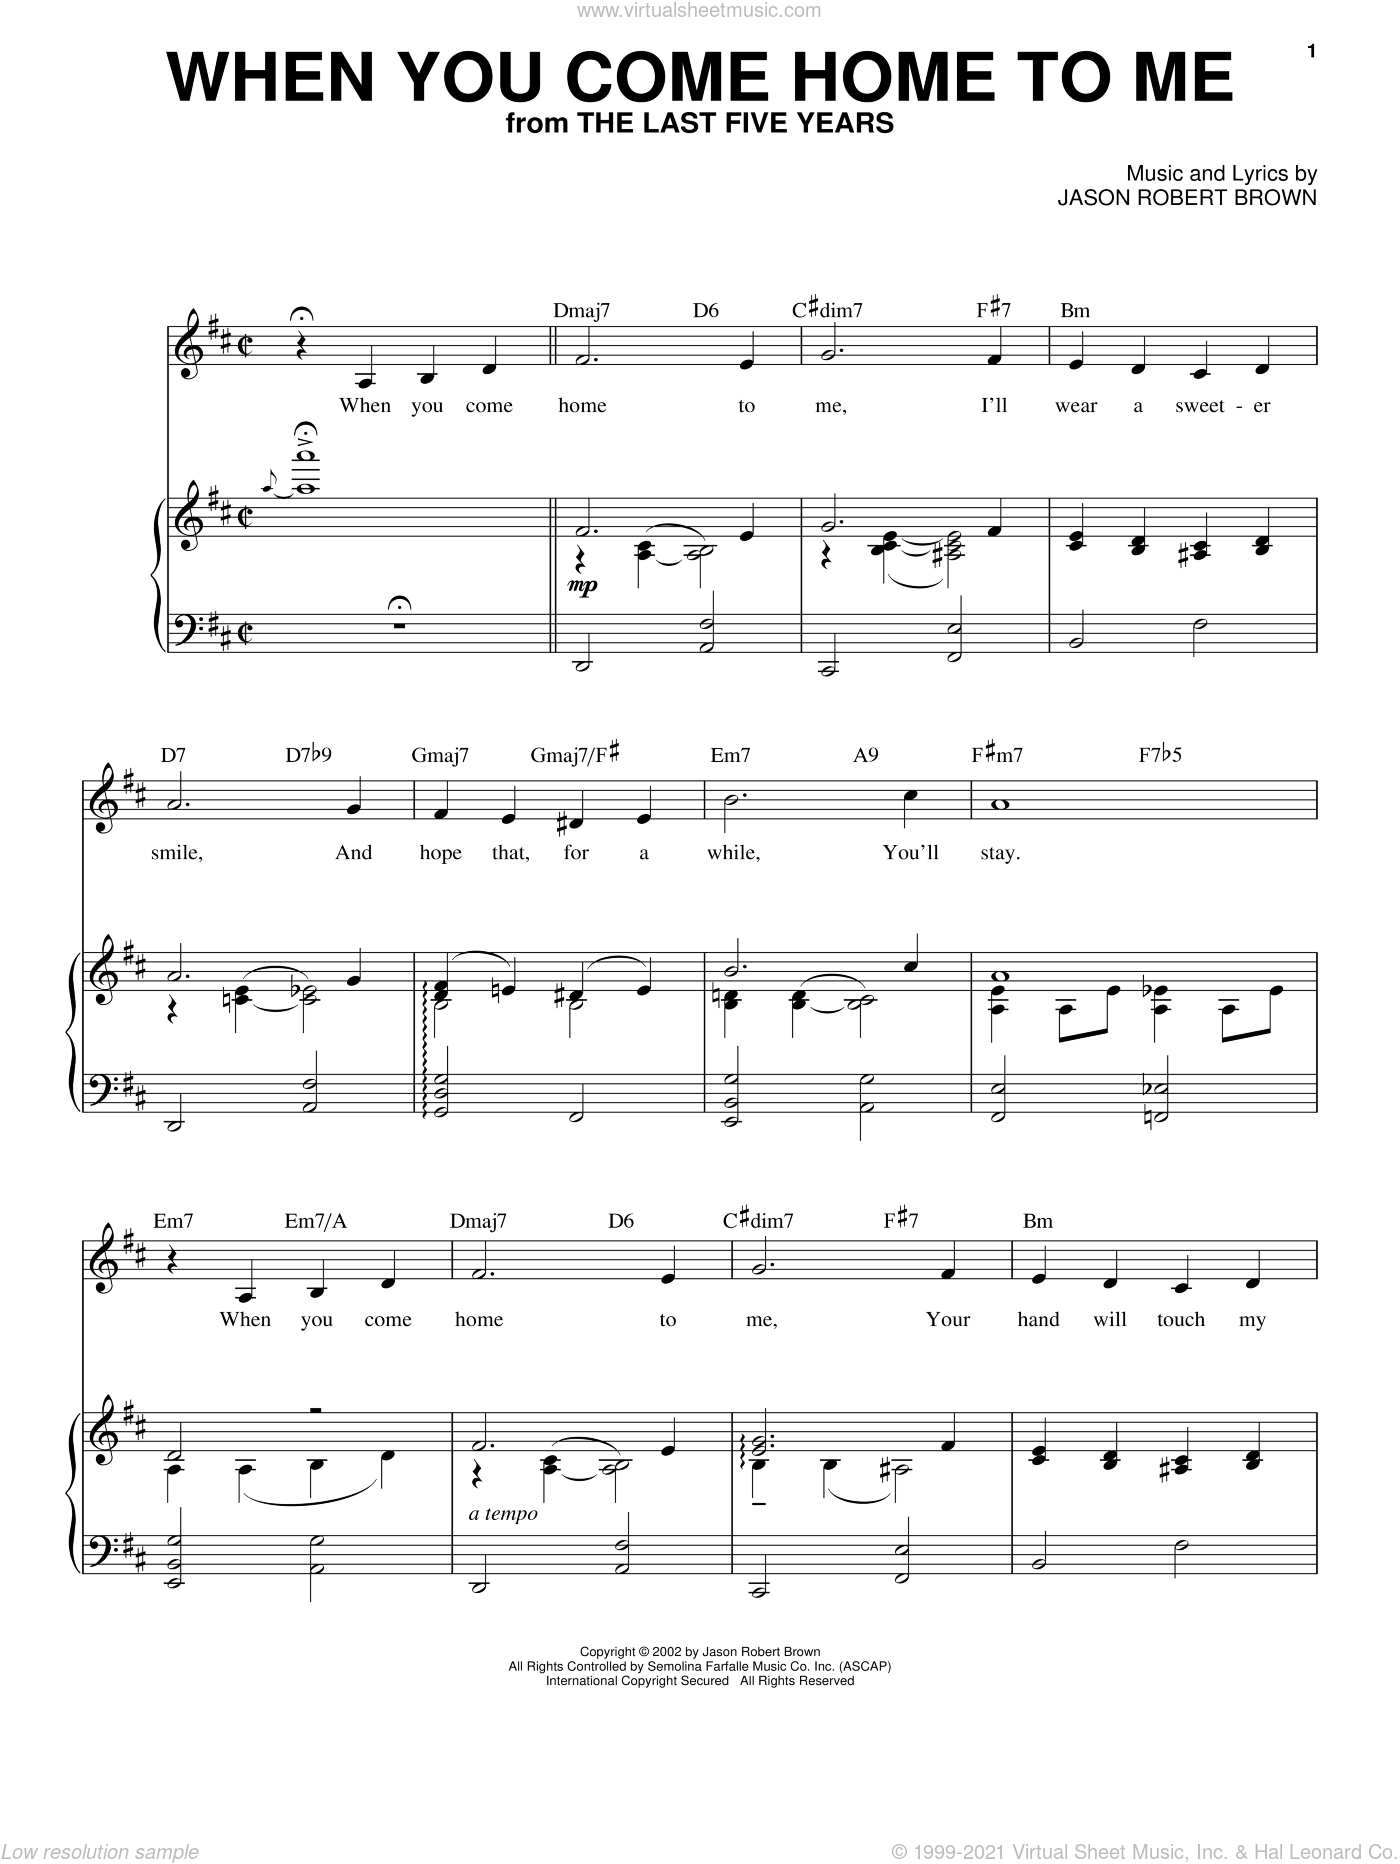 When You Come Home To Me (from The Last 5 Years) sheet music for voice and piano by Jason Robert Brown and The Last Five Years (Musical), intermediate skill level